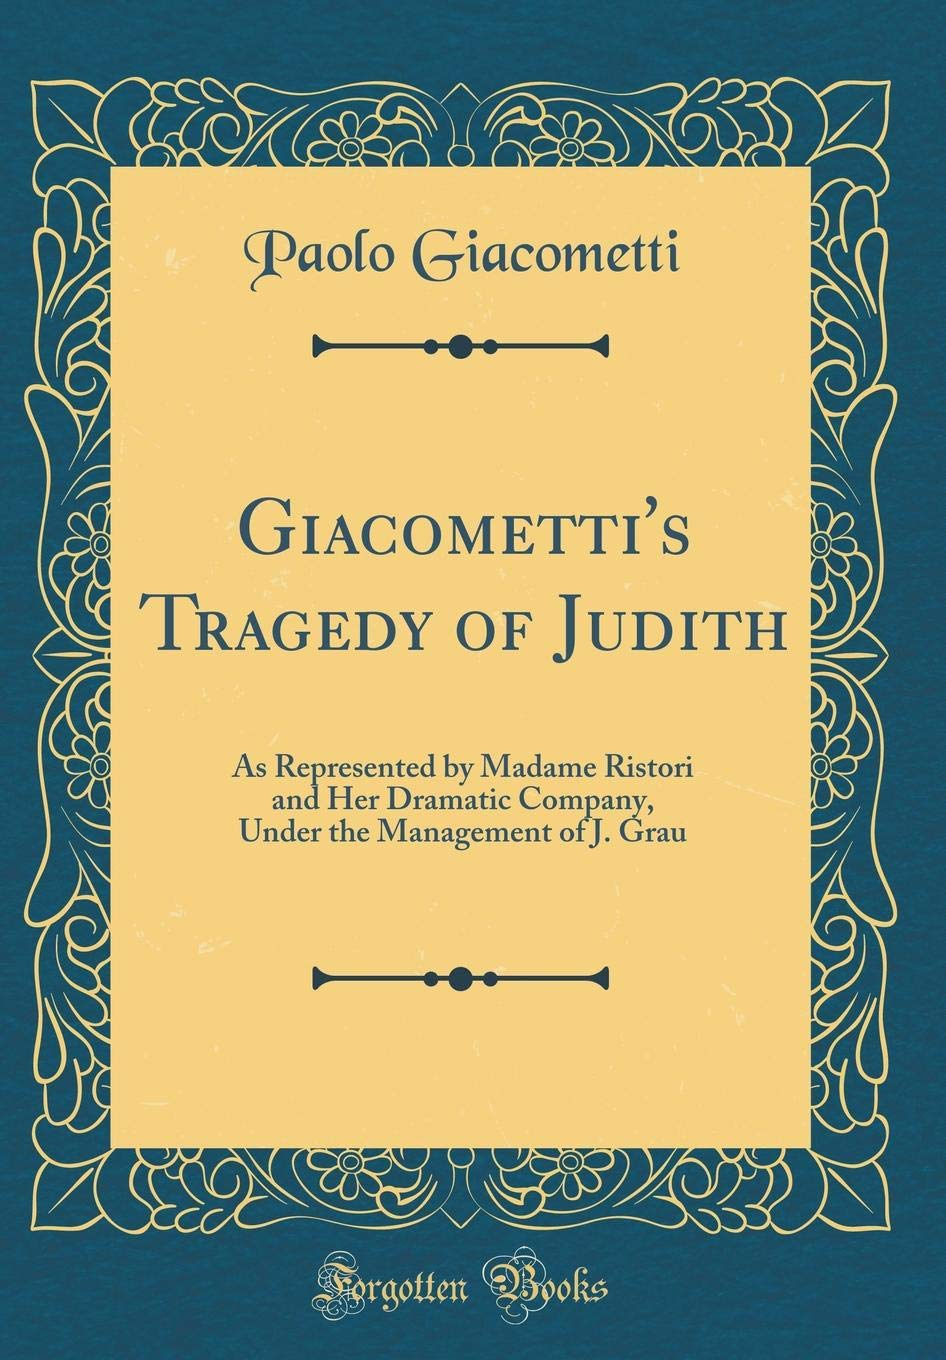 Giacometti's Tragedy of Judith: As Represented by Madame Ristori and Her Dramatic Company, Under the Management of J. Grau (Classic Reprint) ebook